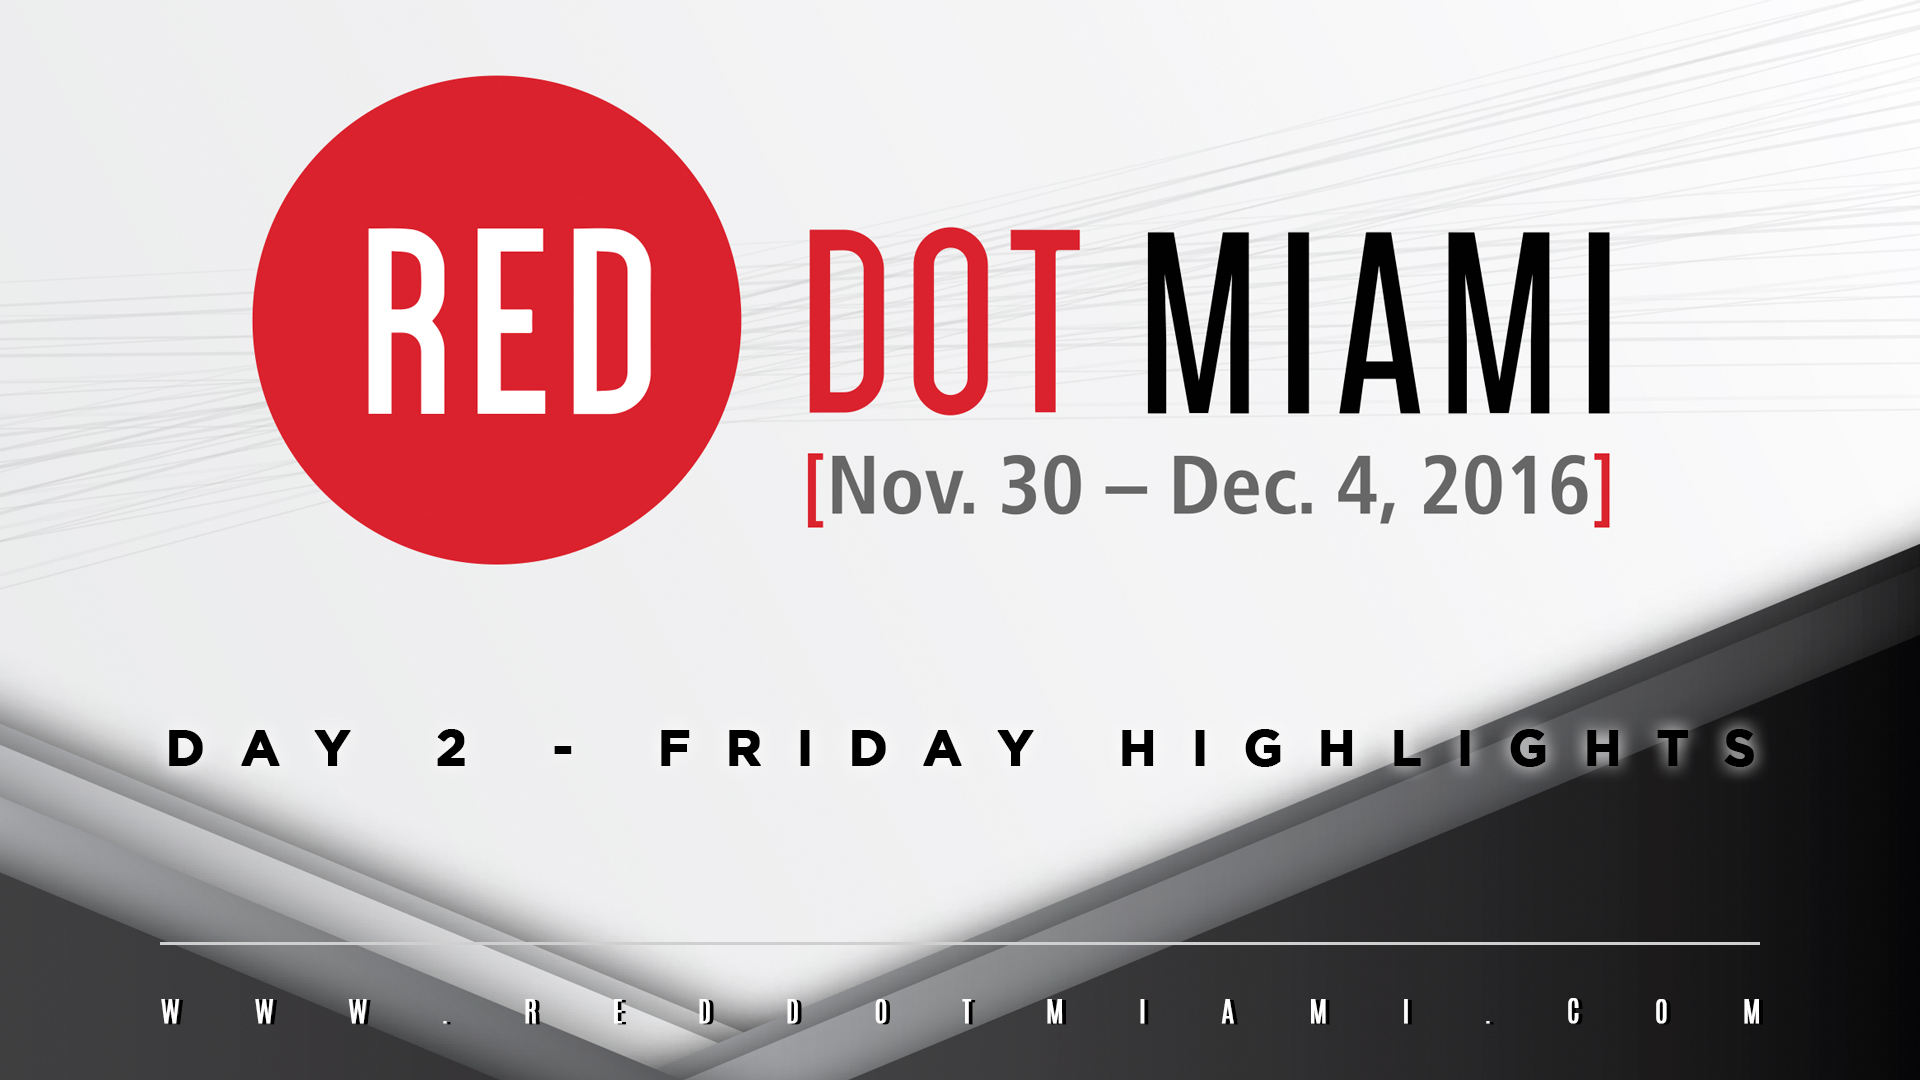 Red Dot Miami 2016 Friday Highlights